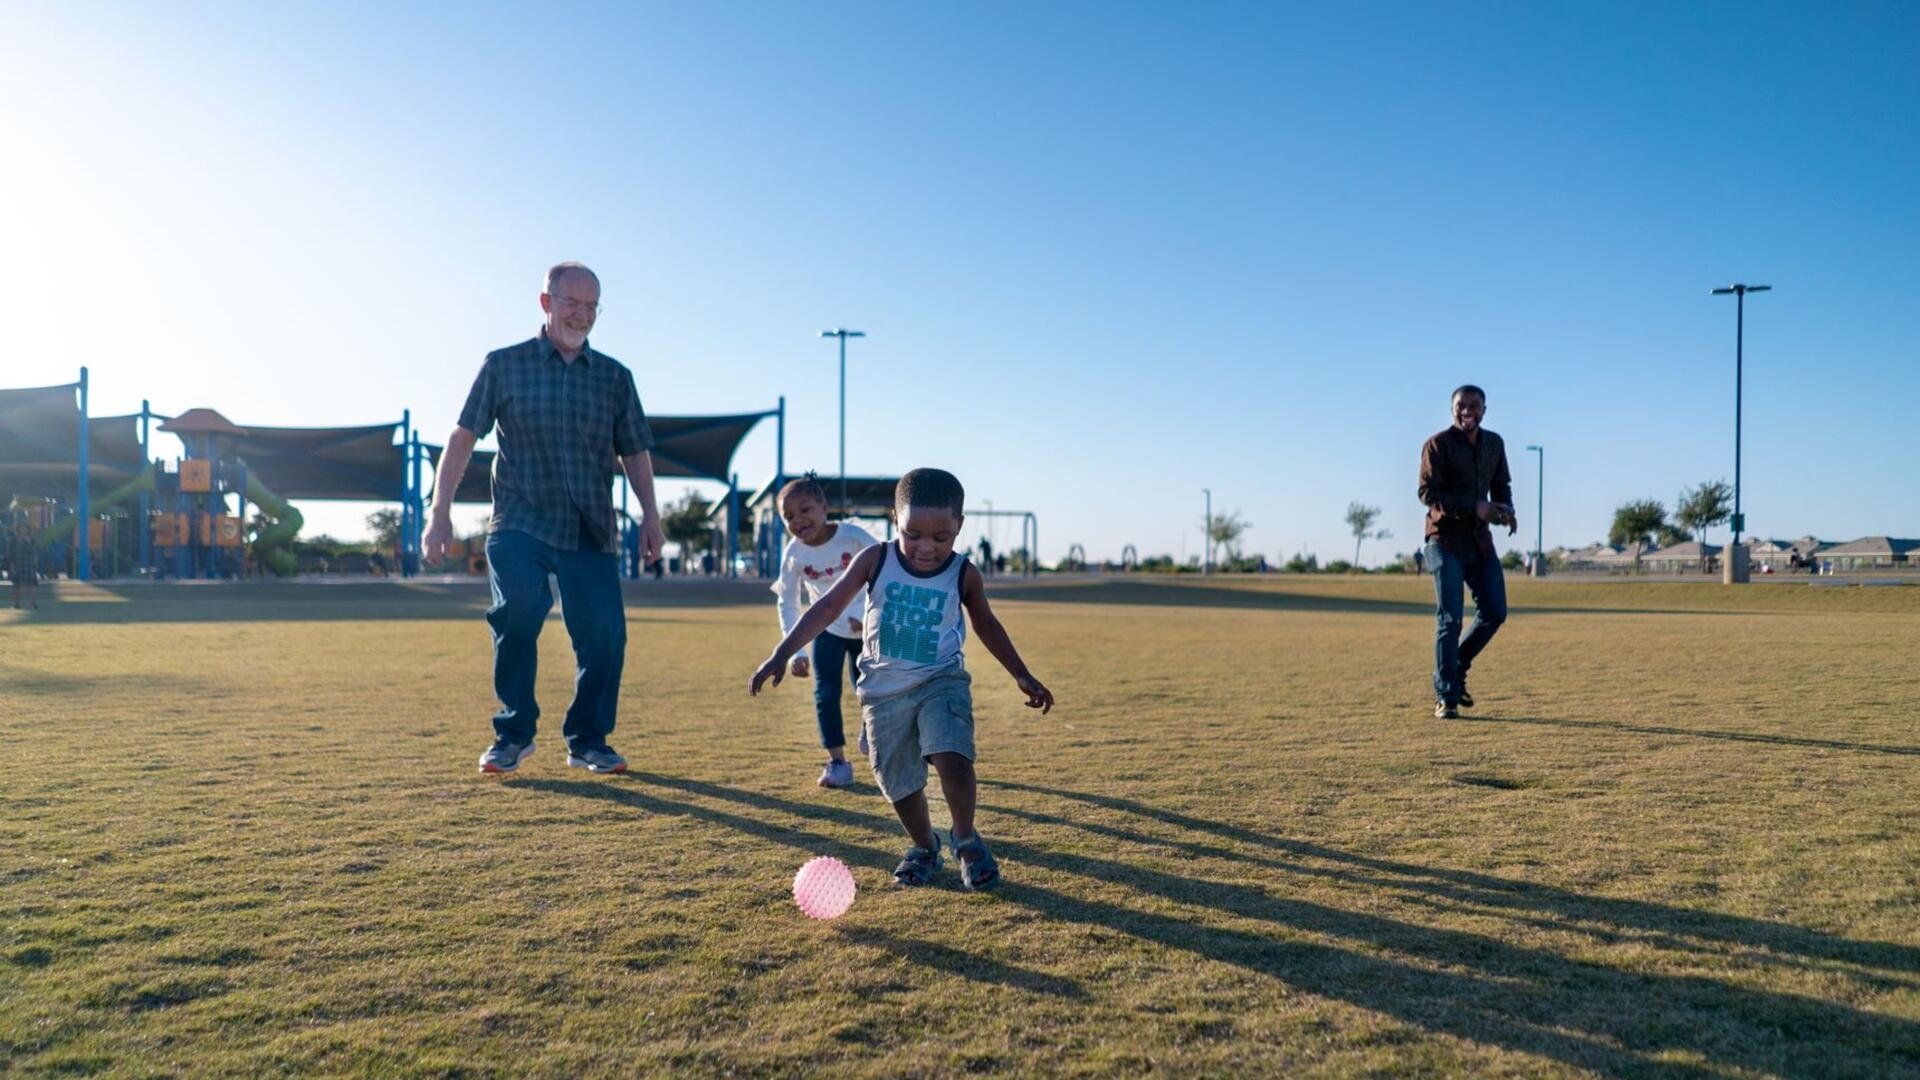 Dave, left, plays with Robert's children, Sandra and Agape who call him Grandpa Dave. They are in a field and the children are kicking a ball.